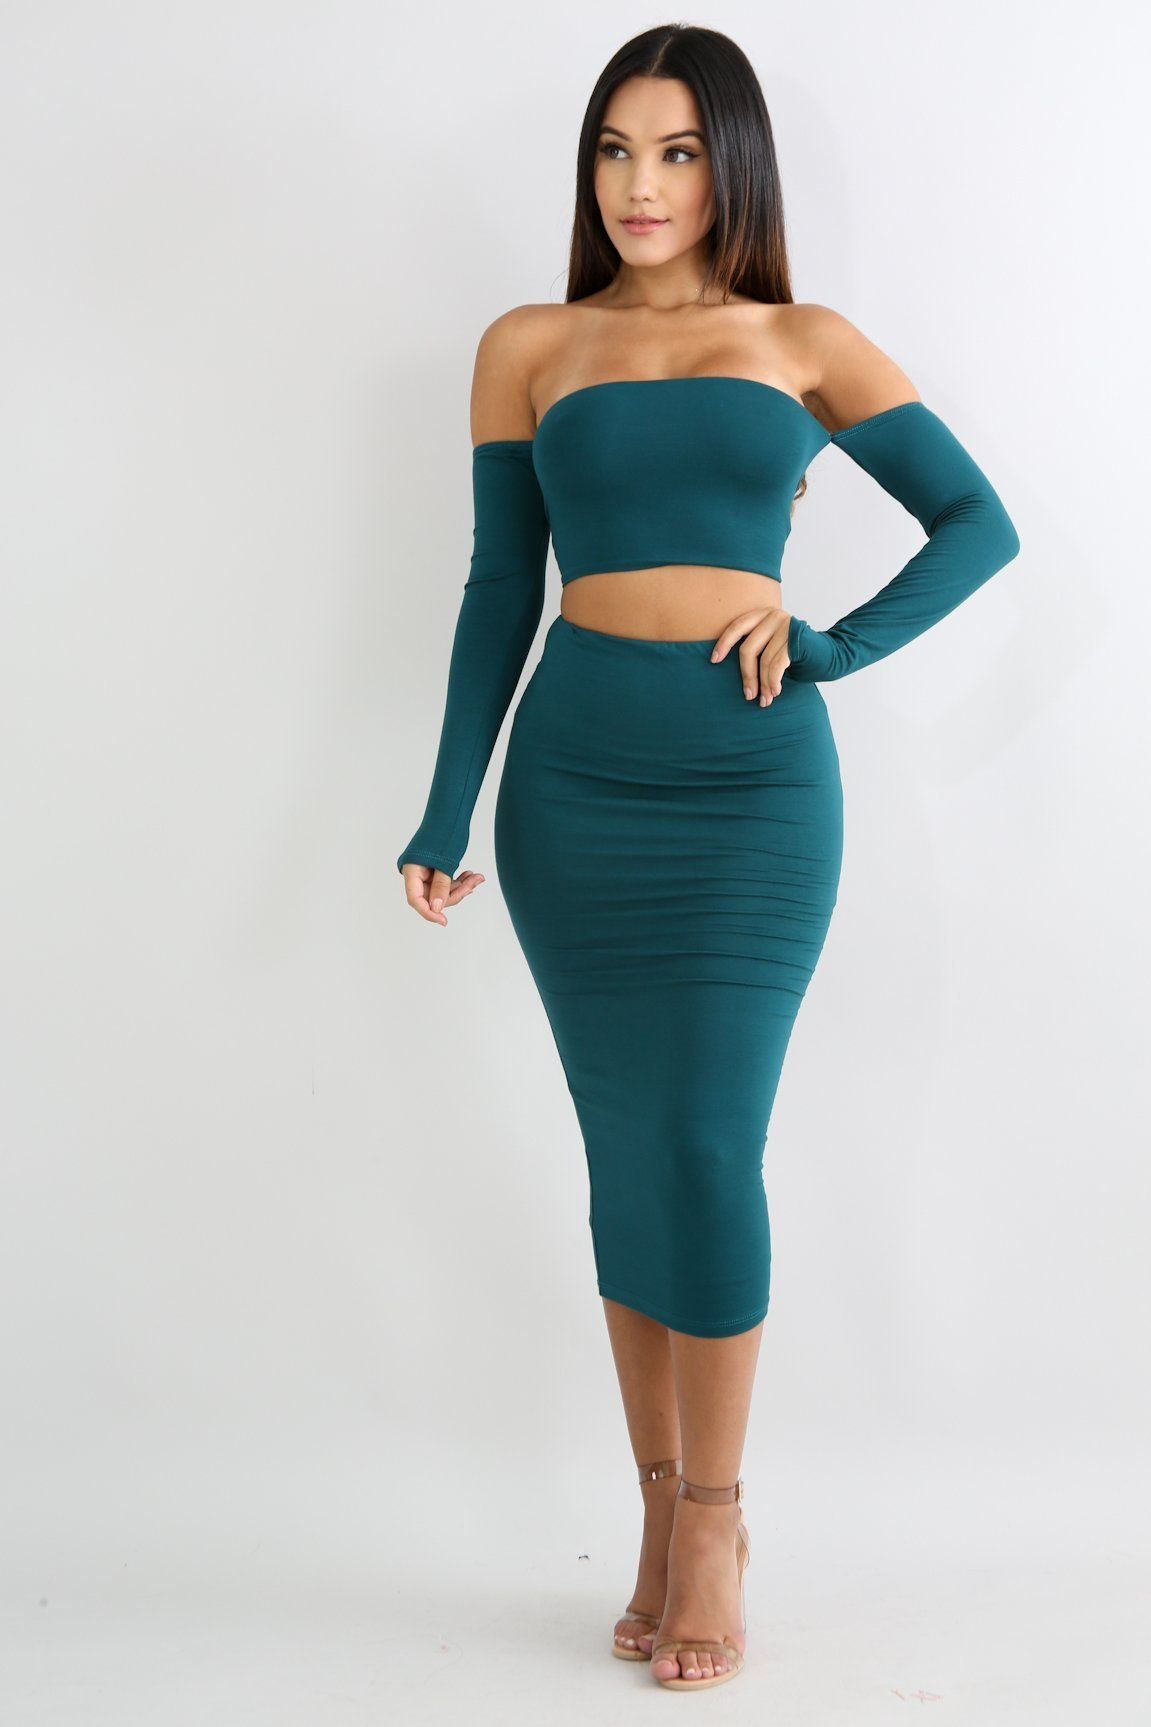 b64f3877d01c JERSEY KNIT HIGH WAISTED MIDI SKIRT SET - GREEN | Products | Fashion ...